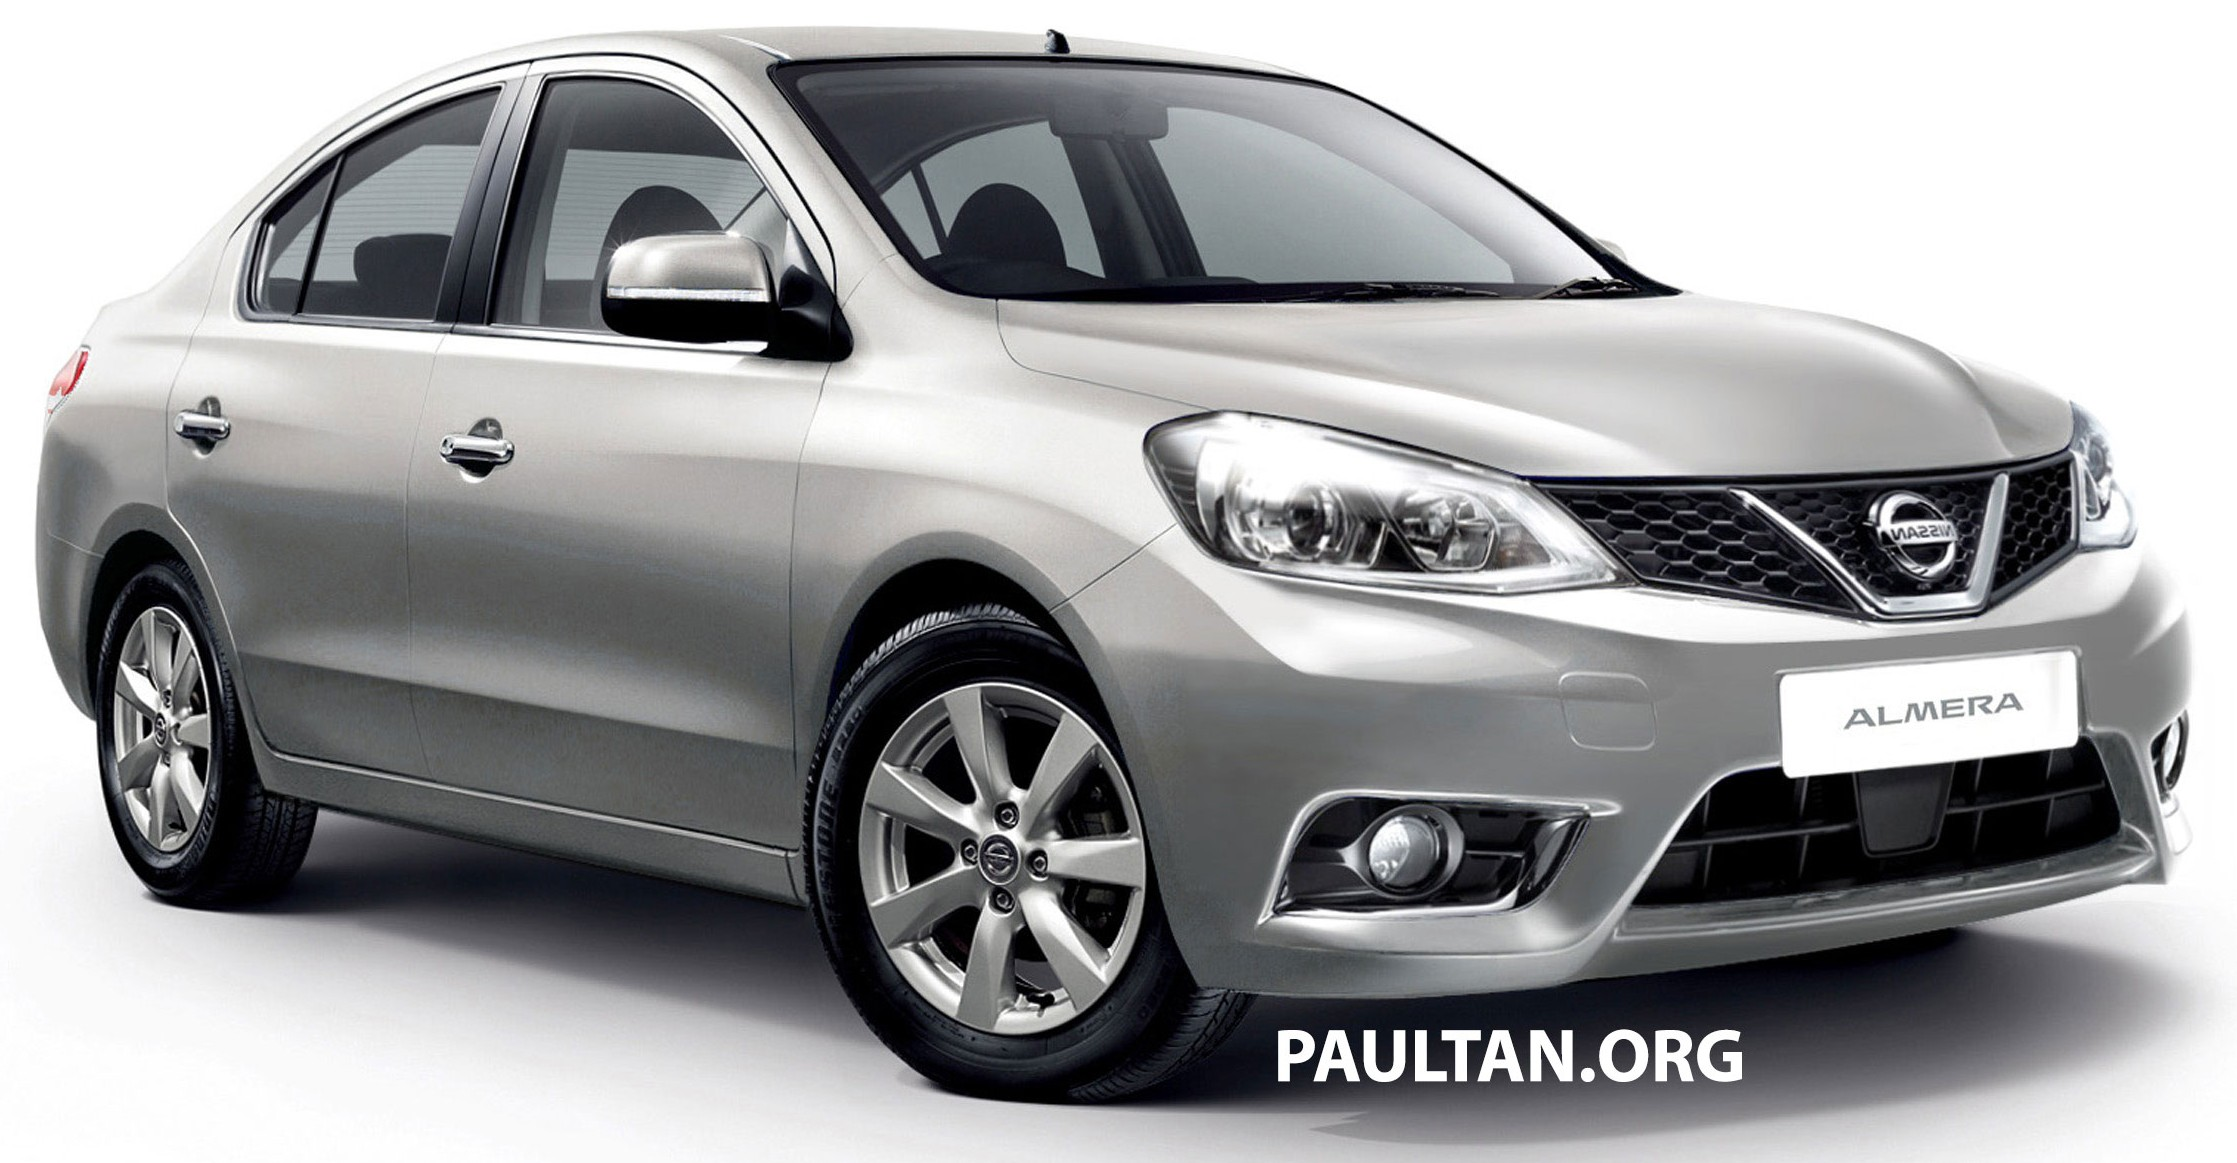 Nissan Almera facelift with V-Motion face rendered Image ...